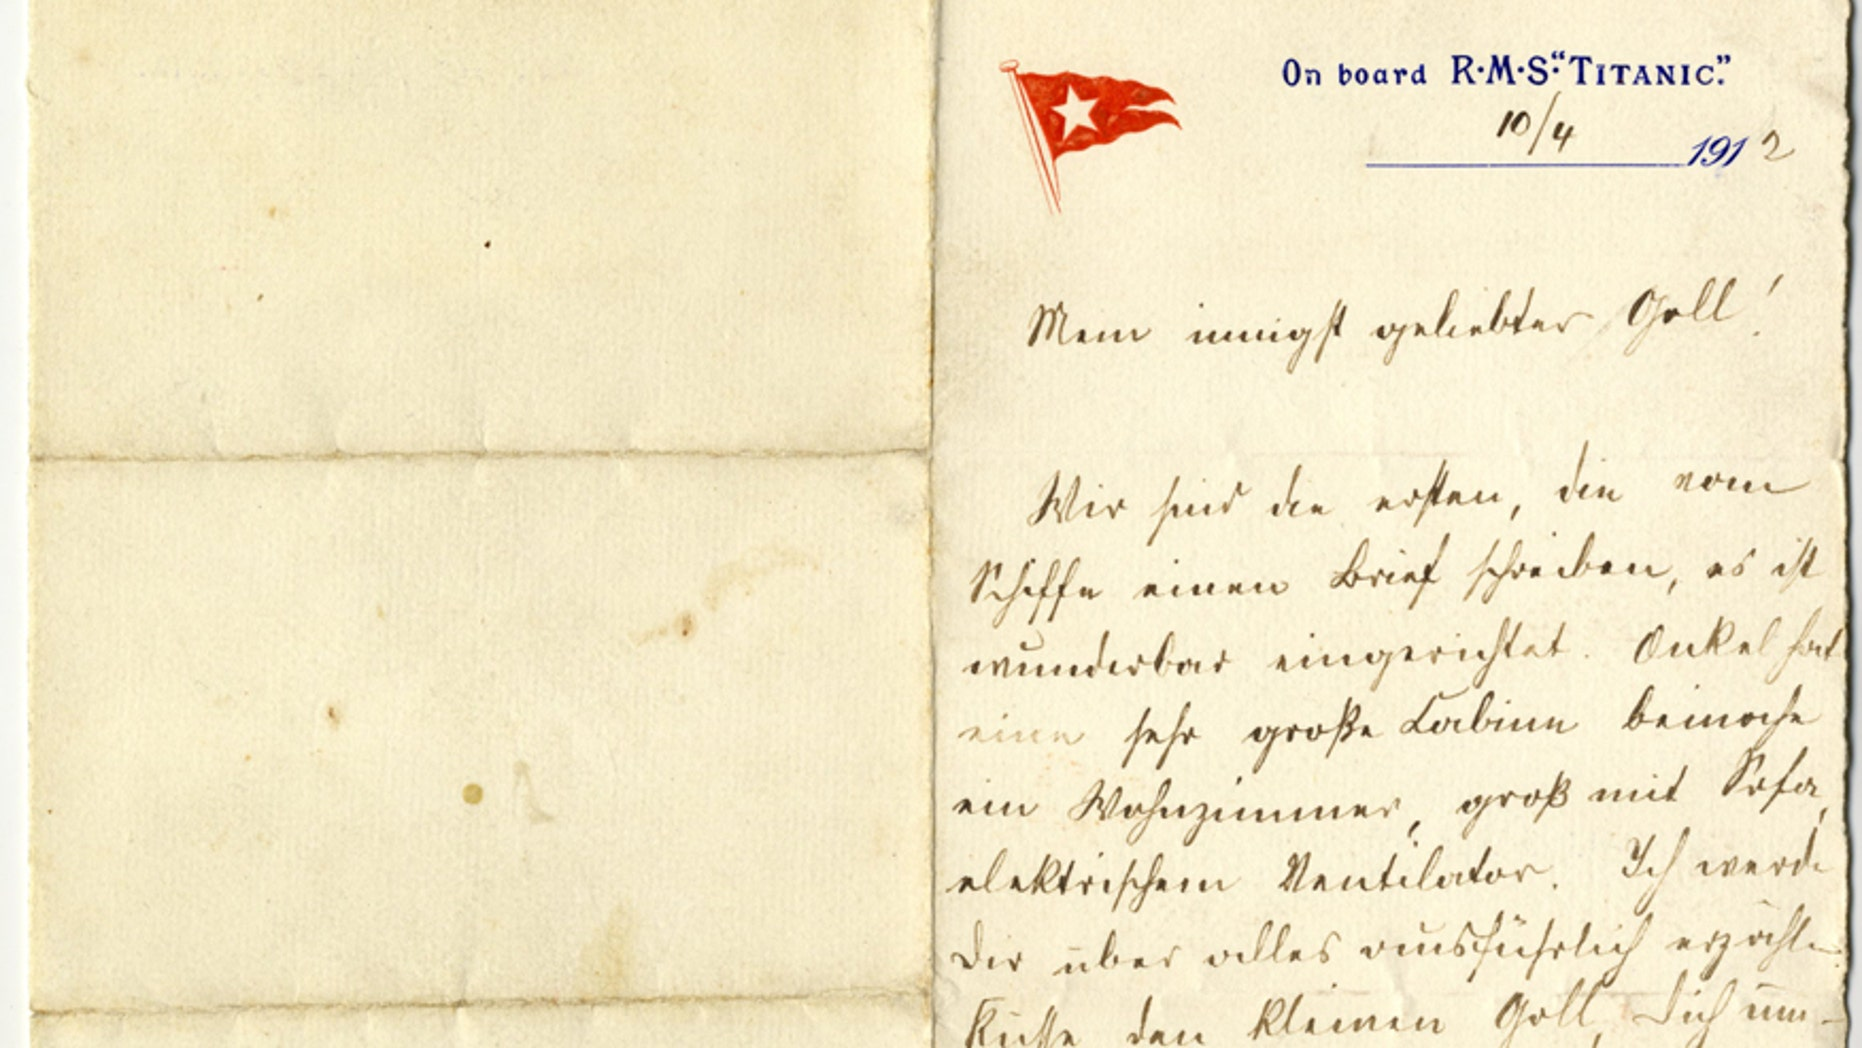 The letter written on April 10 1912 by Paul Danby to his wife Rose (Henry Aldridge & Son).